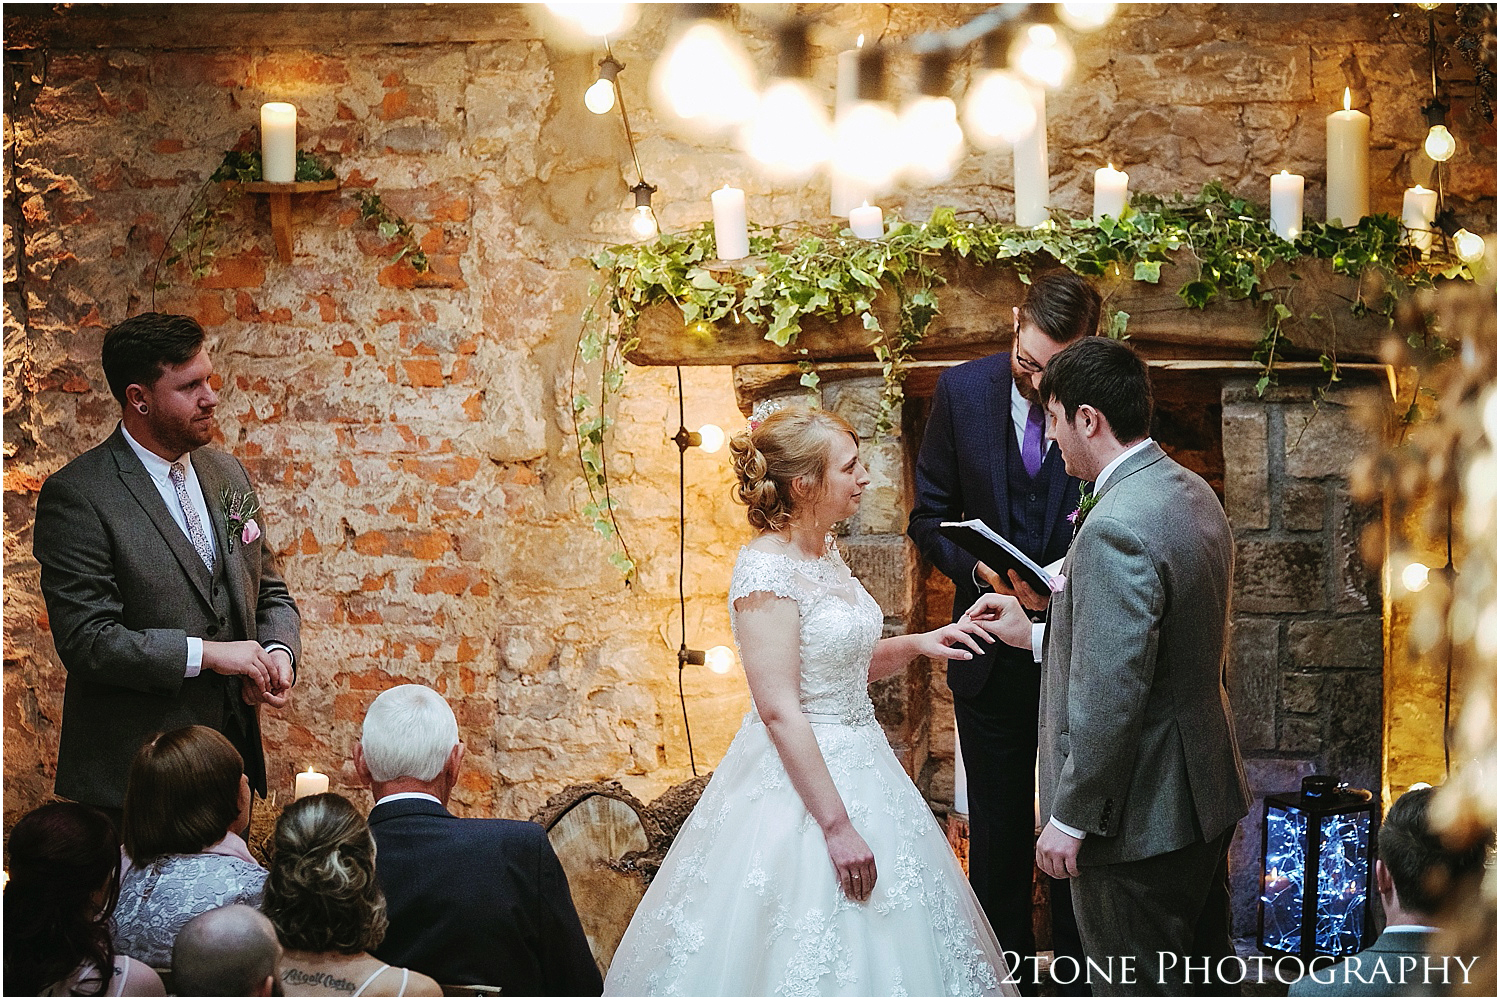 Doxford barns wedding photographer 030.jpg